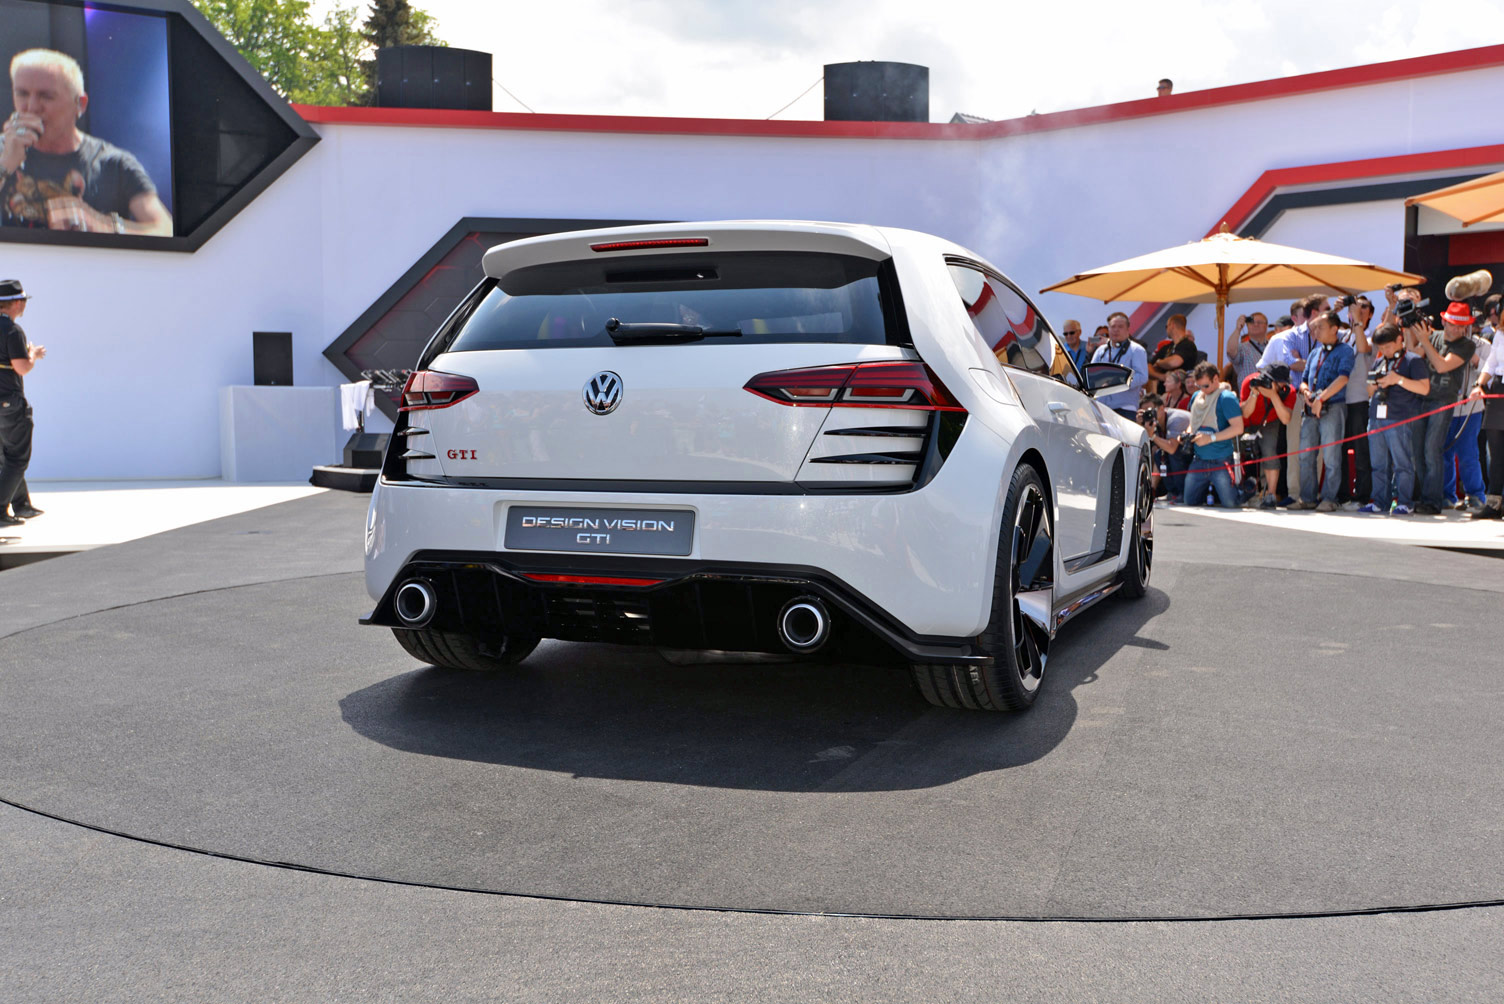 volkswagen-design-vision-gti-worthersee-025